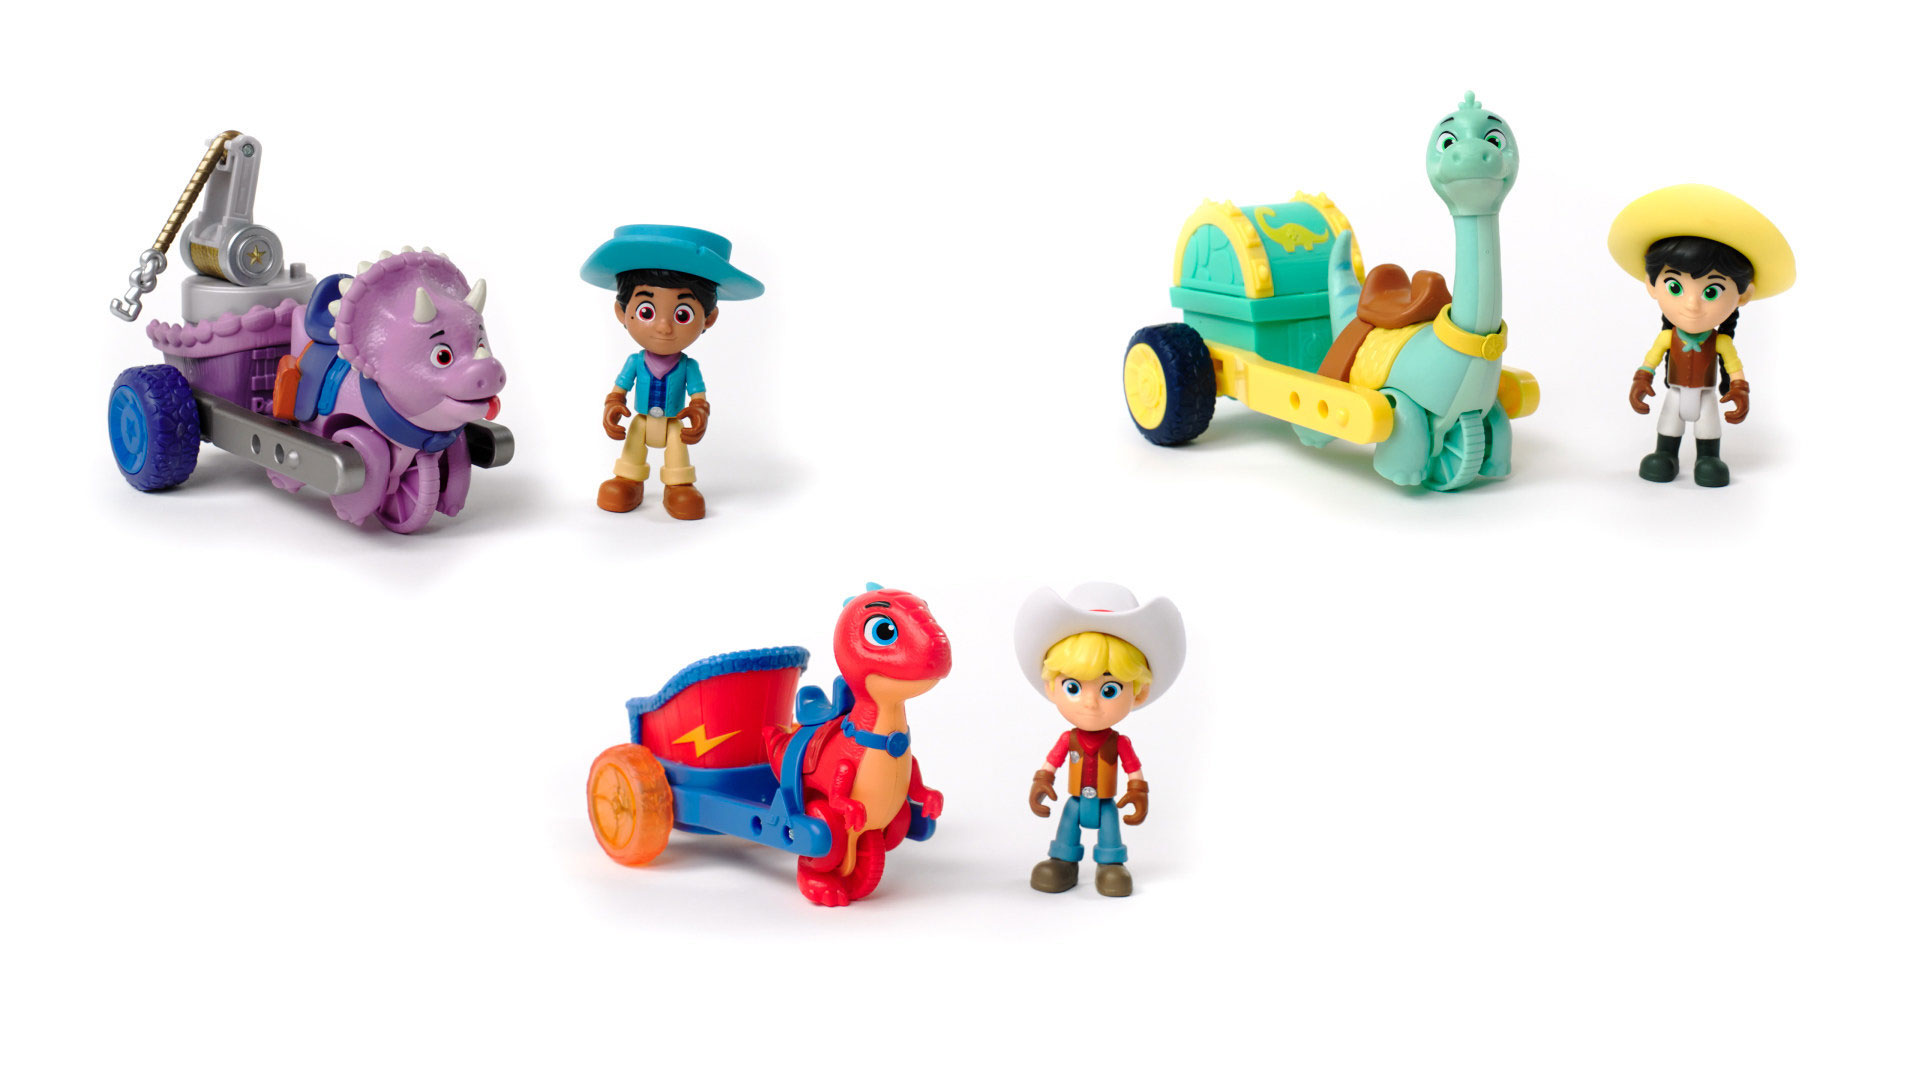 Dino Ranch Toy Line from Brand Jazwares Coming This Fall